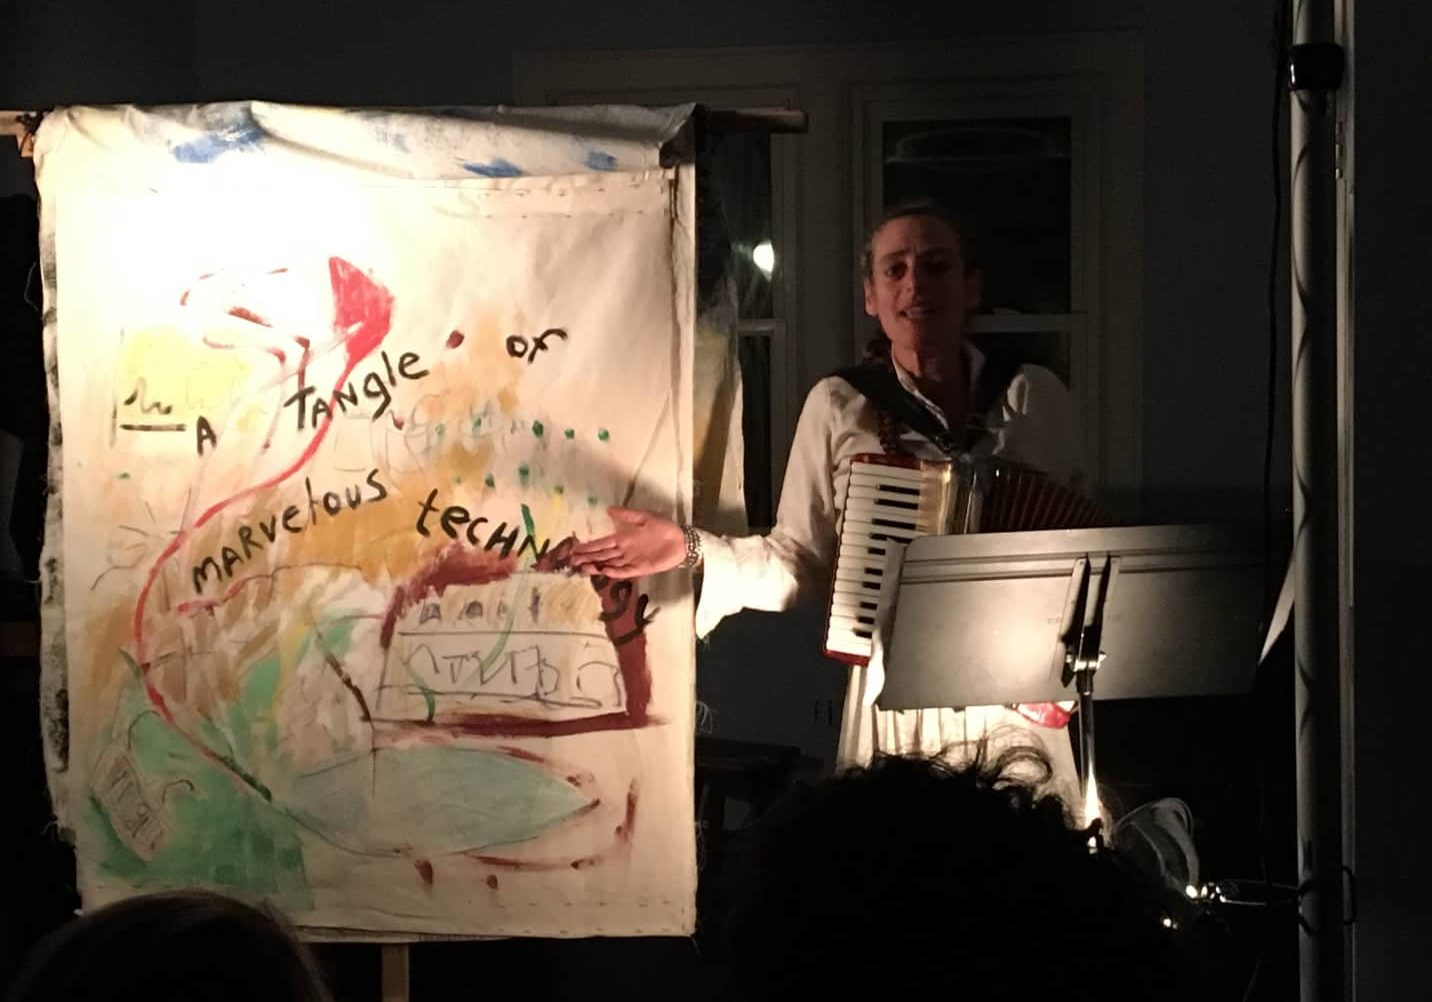 Clare Dolan performing Exquisite Corpse